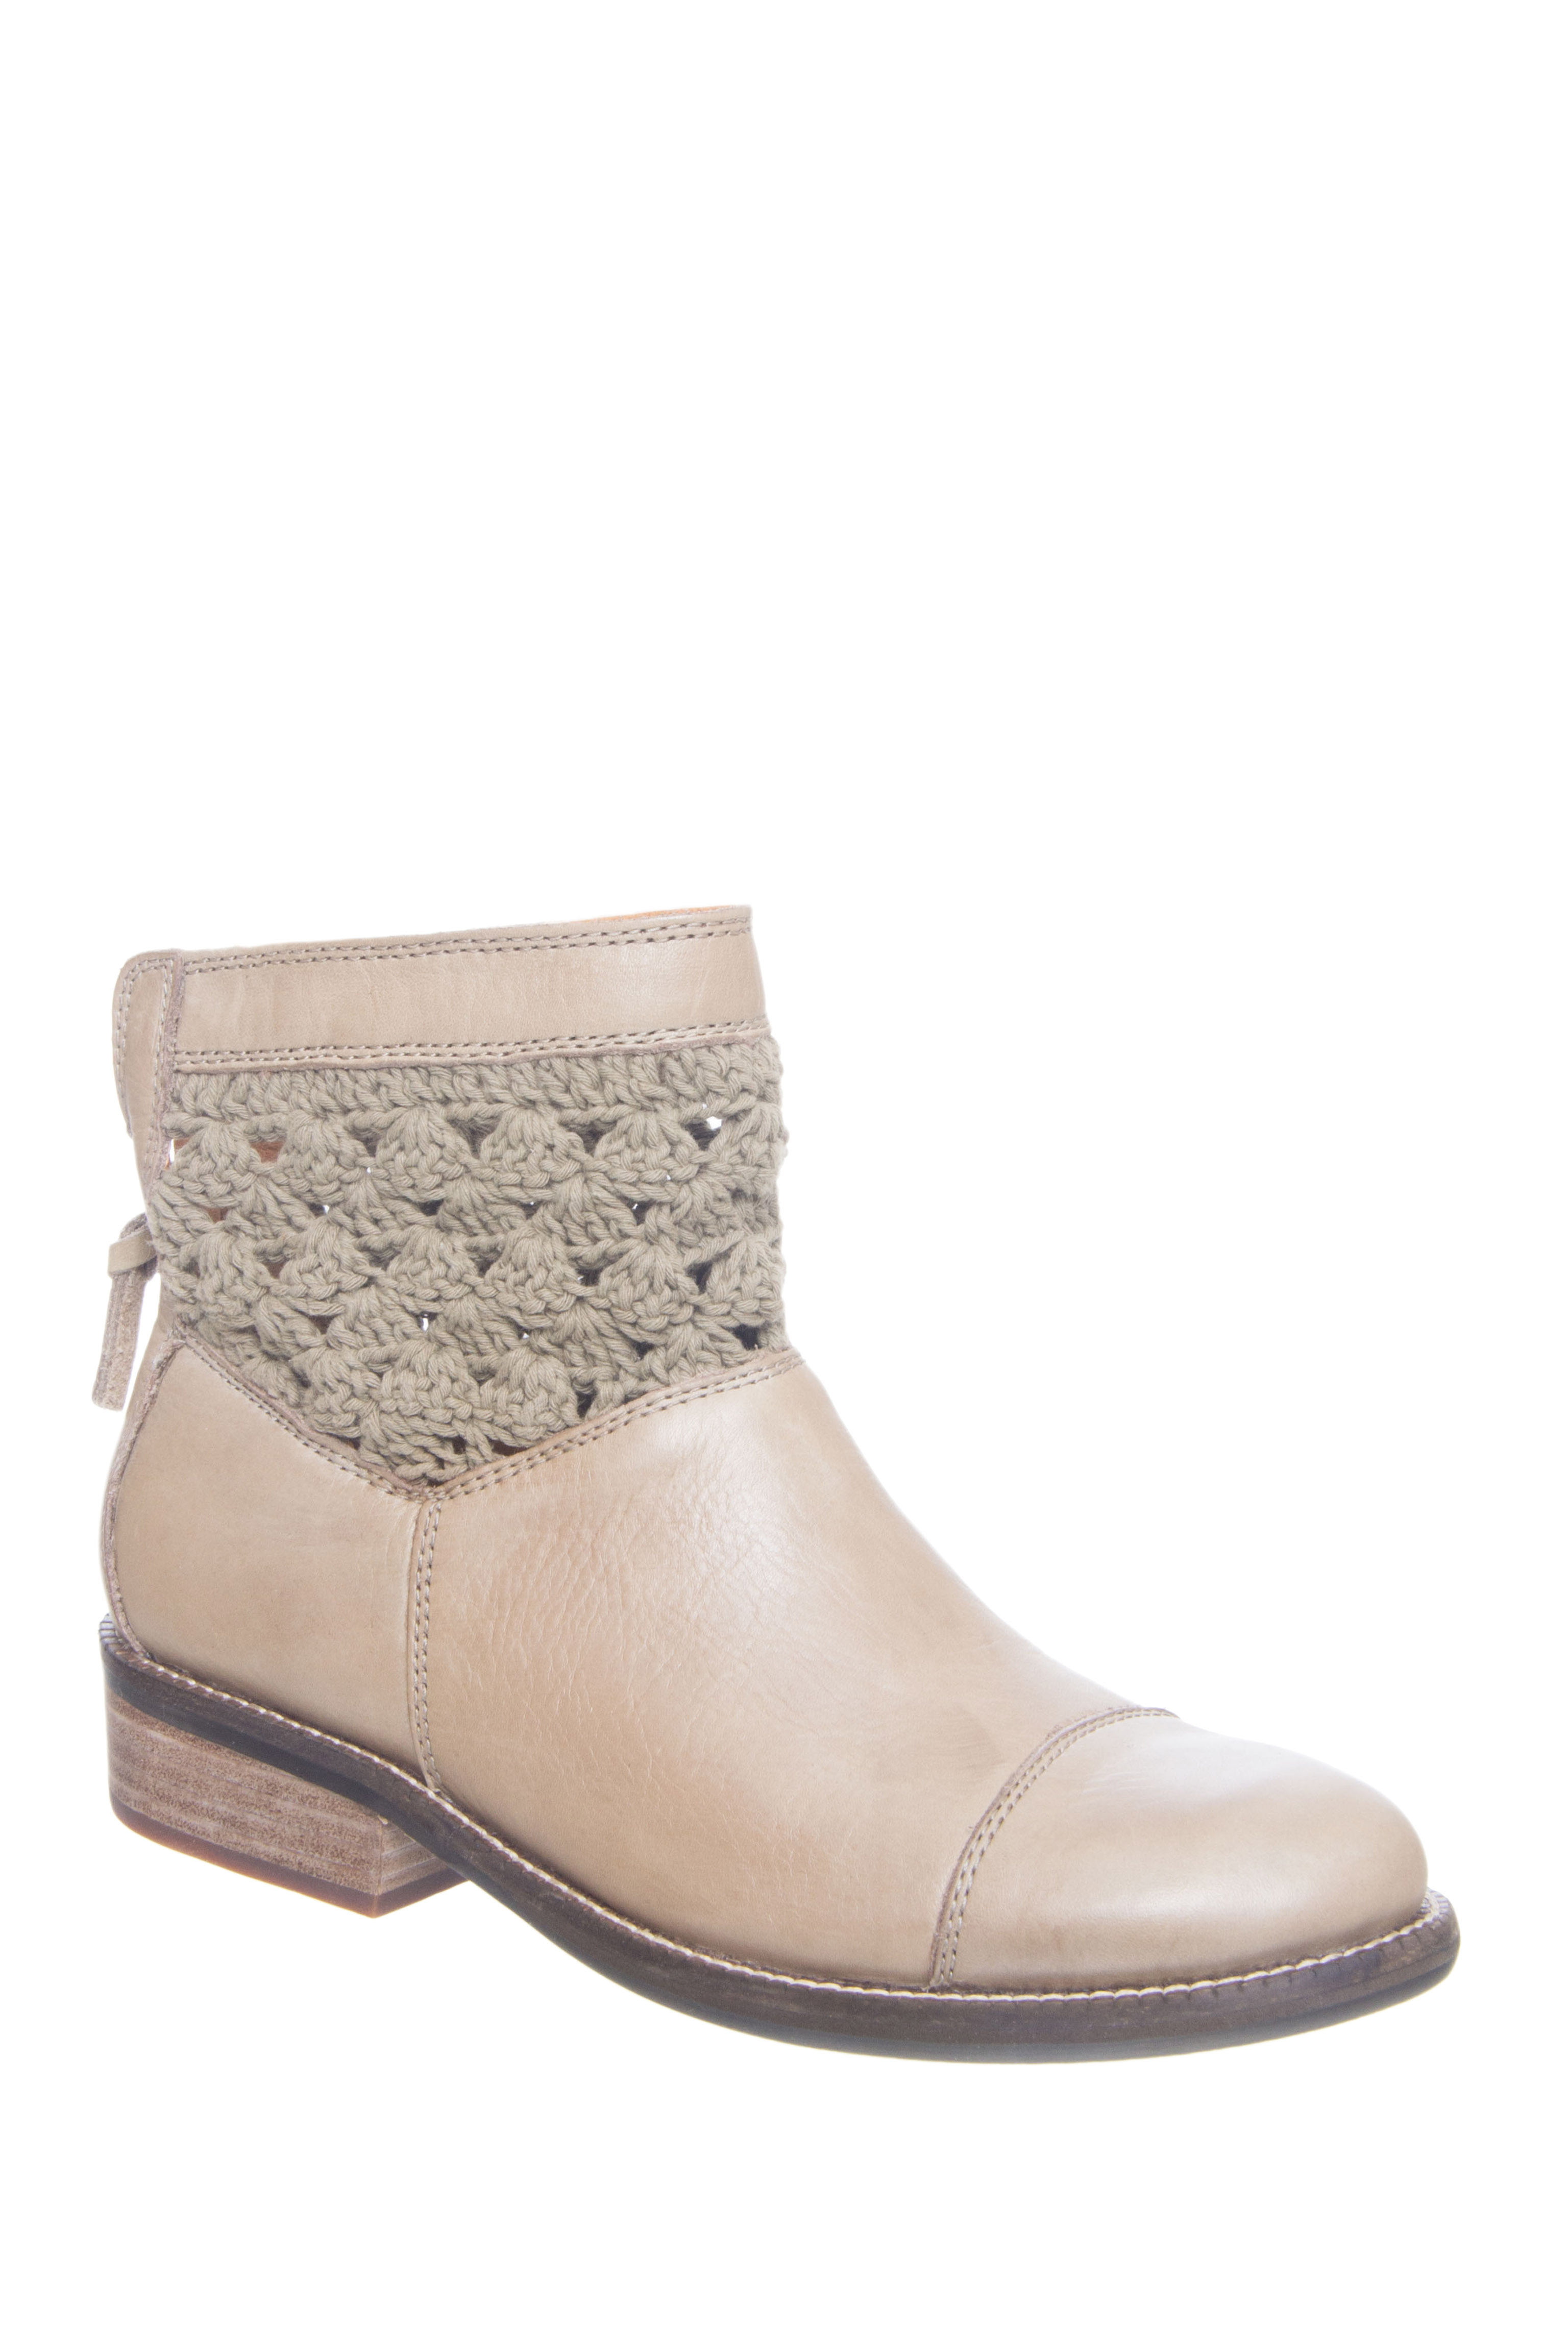 Latigo Carly Crochet Cuff Booties - Mushroom